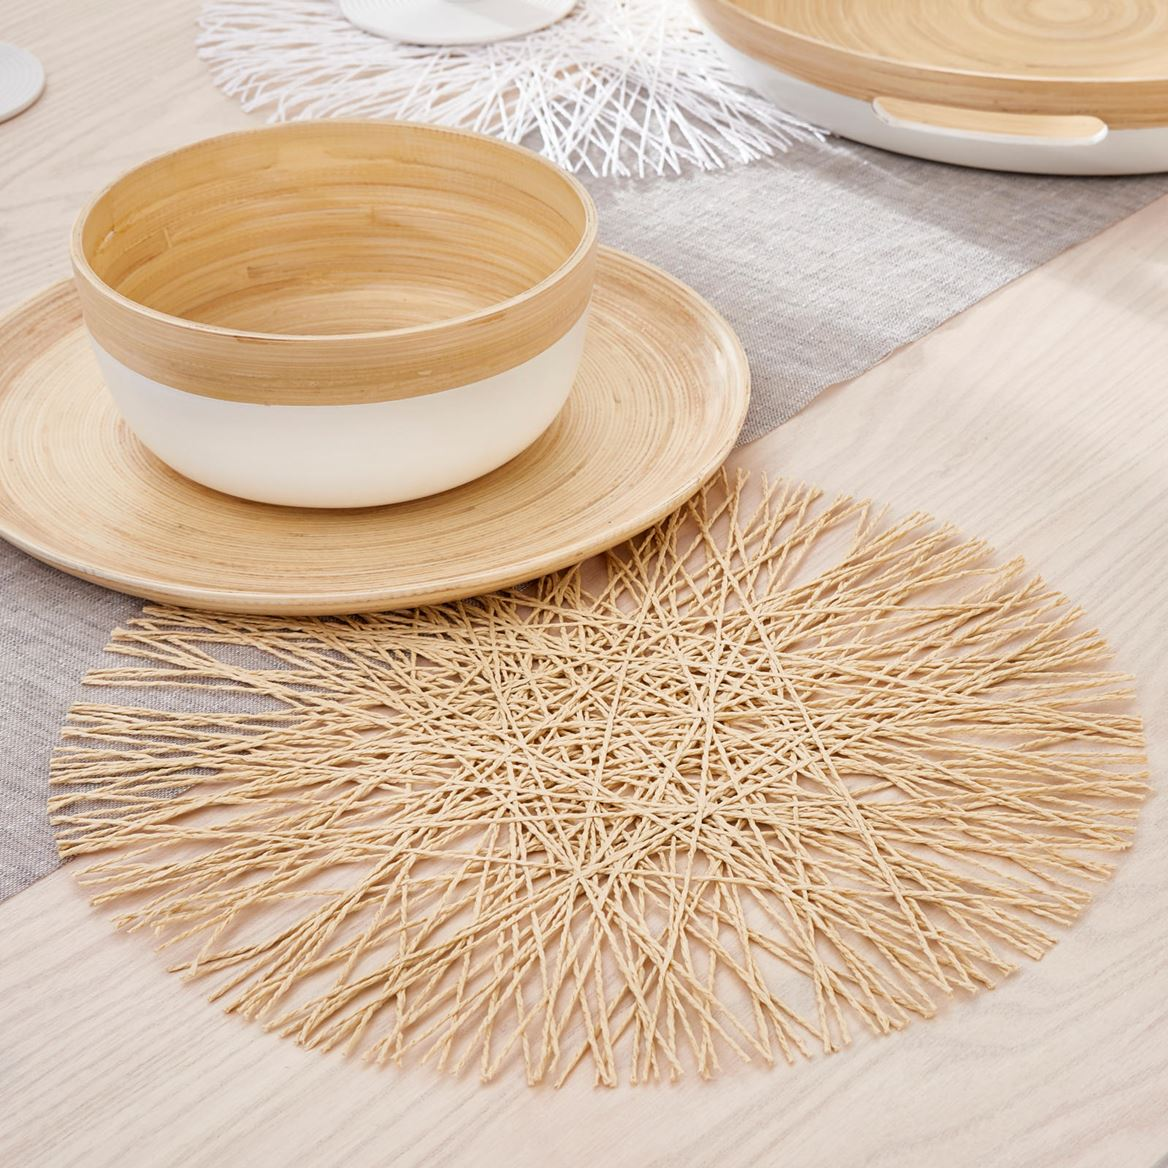 RAMI Set de table naturel Ø 38 cm_rami-set-de-table-naturel-ø-38-cm